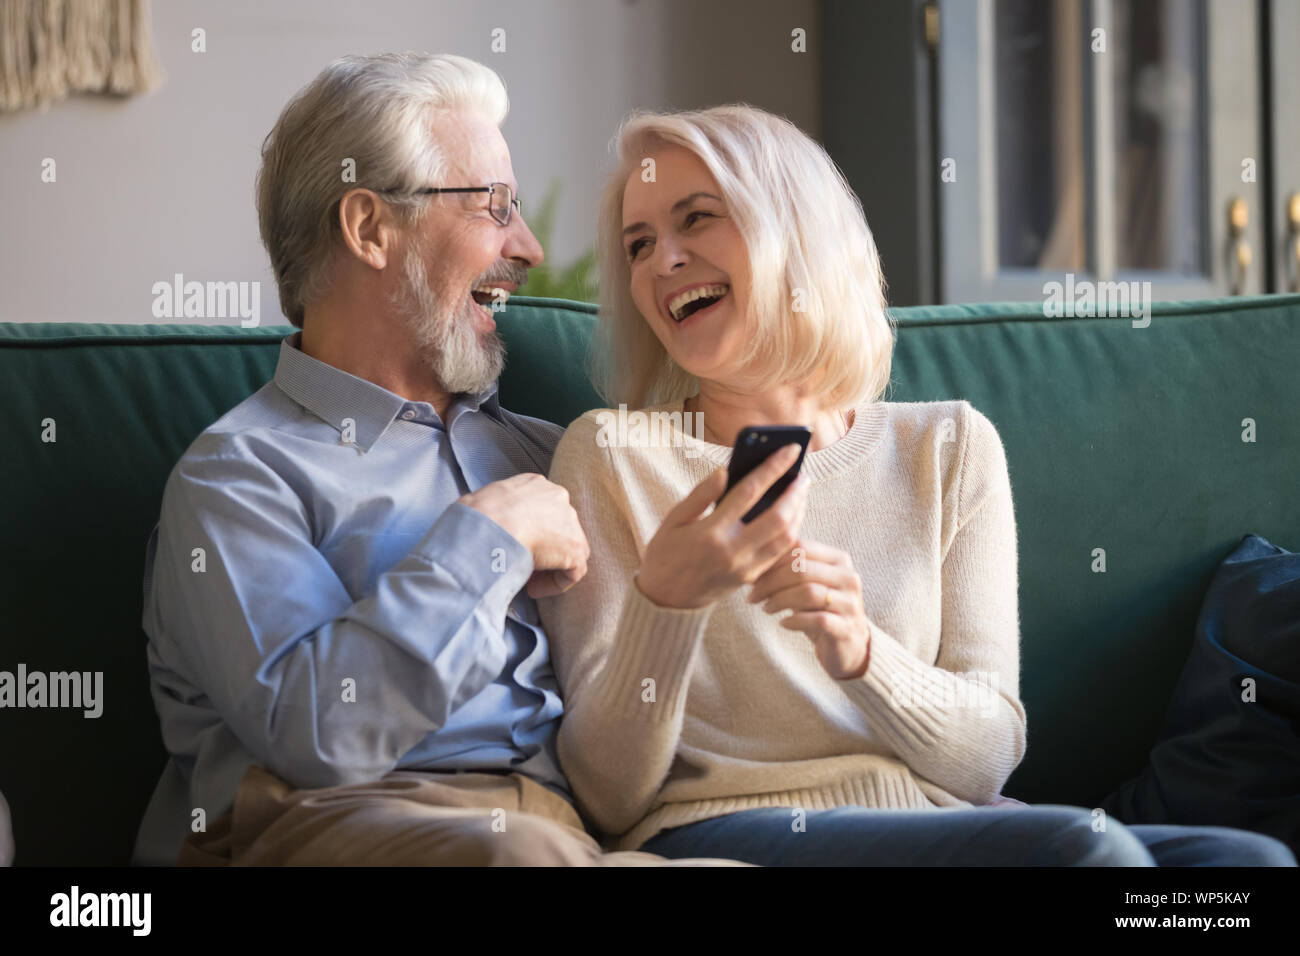 Happy retirees family laughing using smartphone at home. Stock Photo